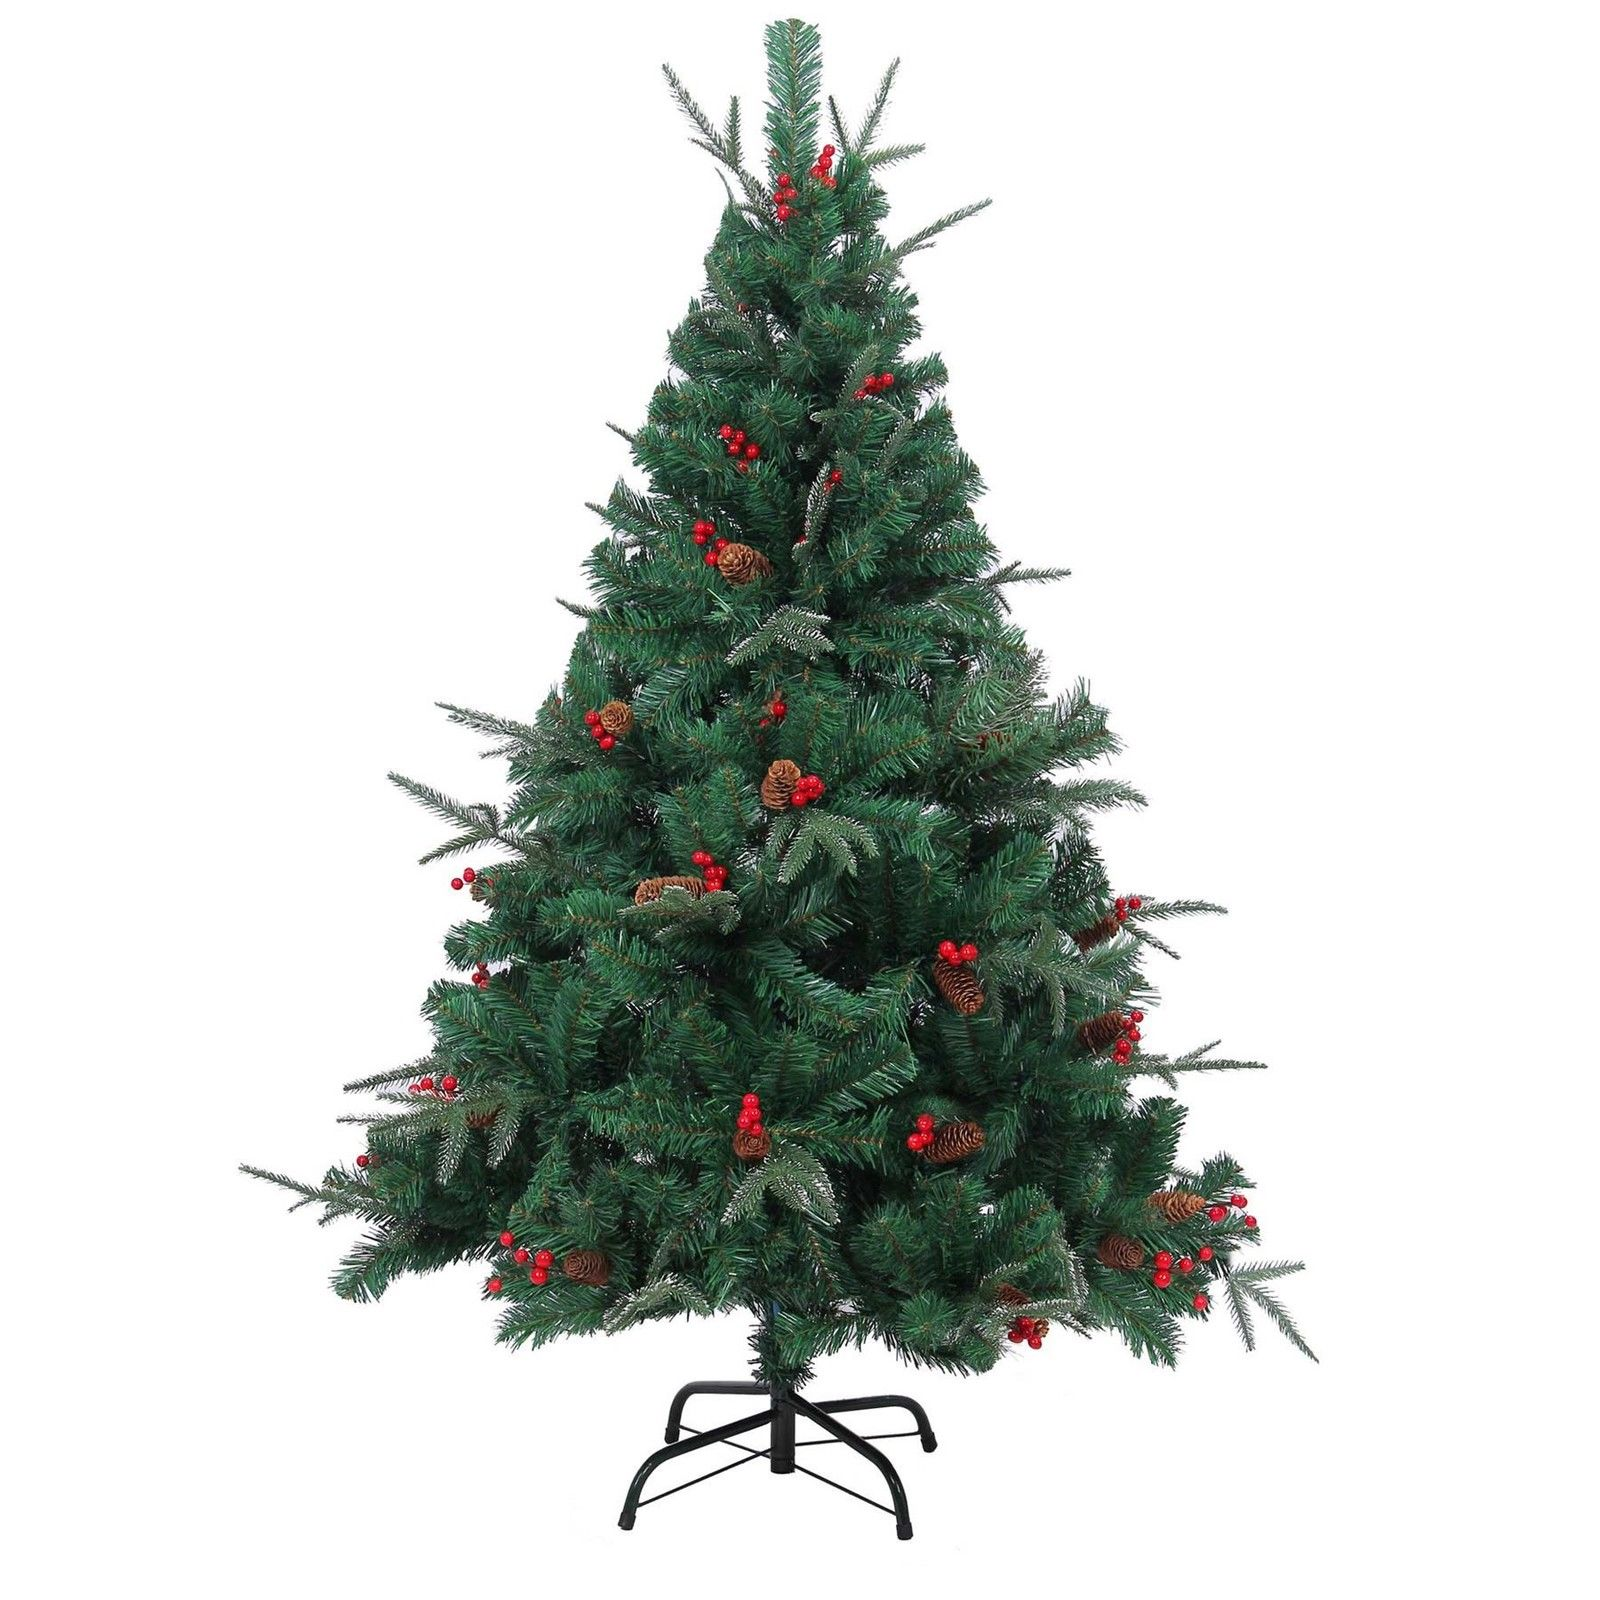 5ft 6ft 7ft deluxe pre decorated artificial christmas